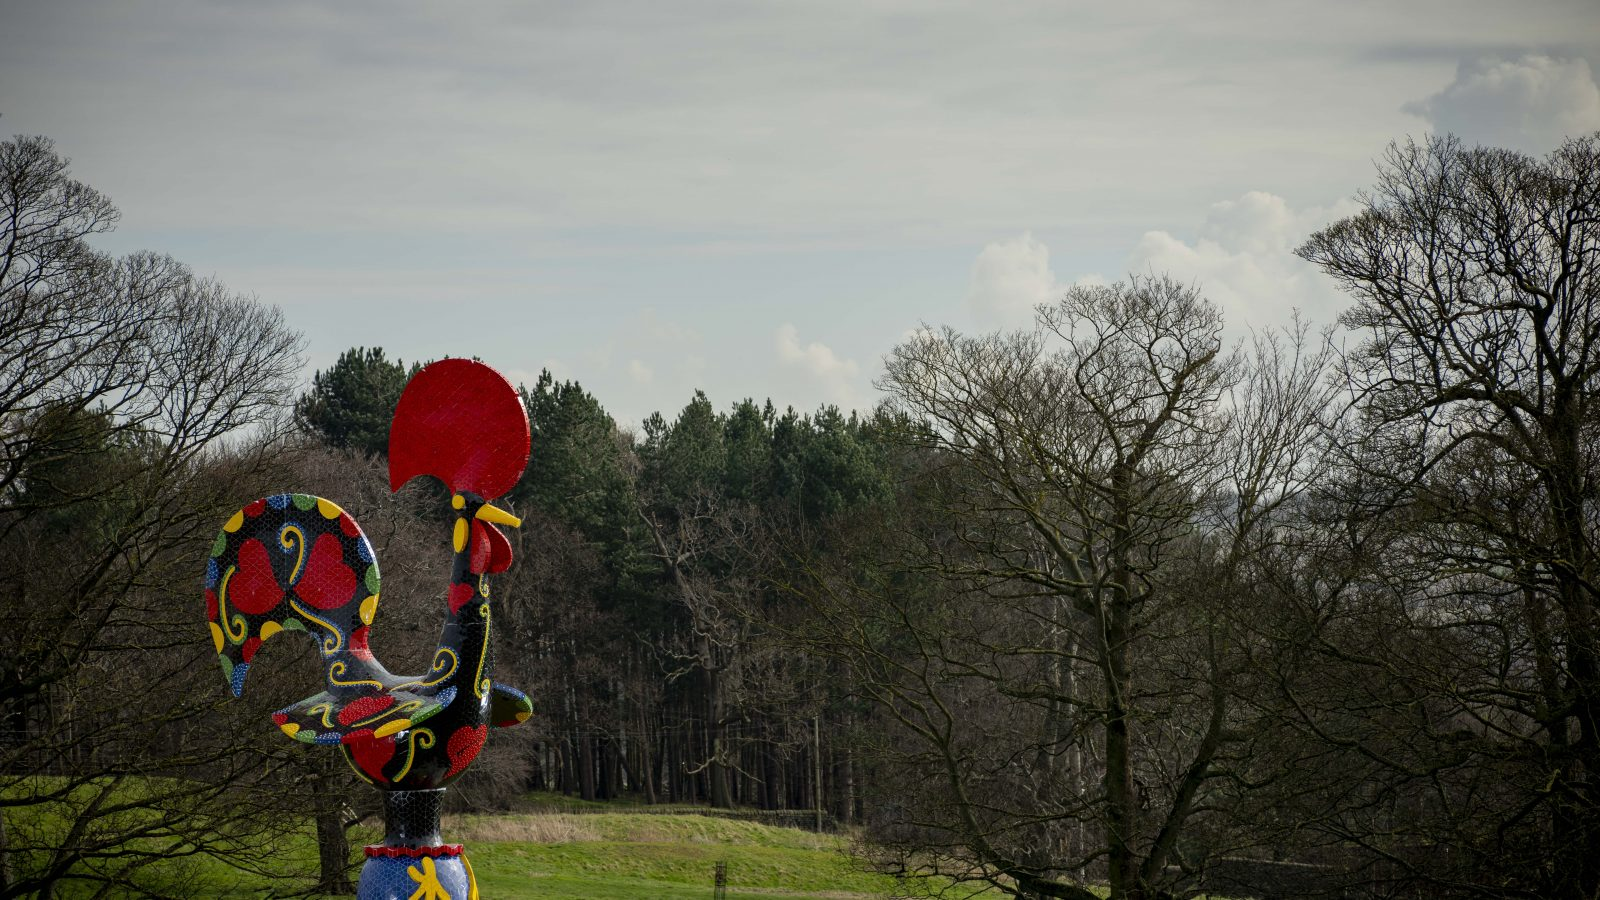 Joana Vasconcelos, Pop Galo at Yorkshire Sculpture Park, 2020. Photo © Jonty Wilde, Courtesy the artist and YSP (2)